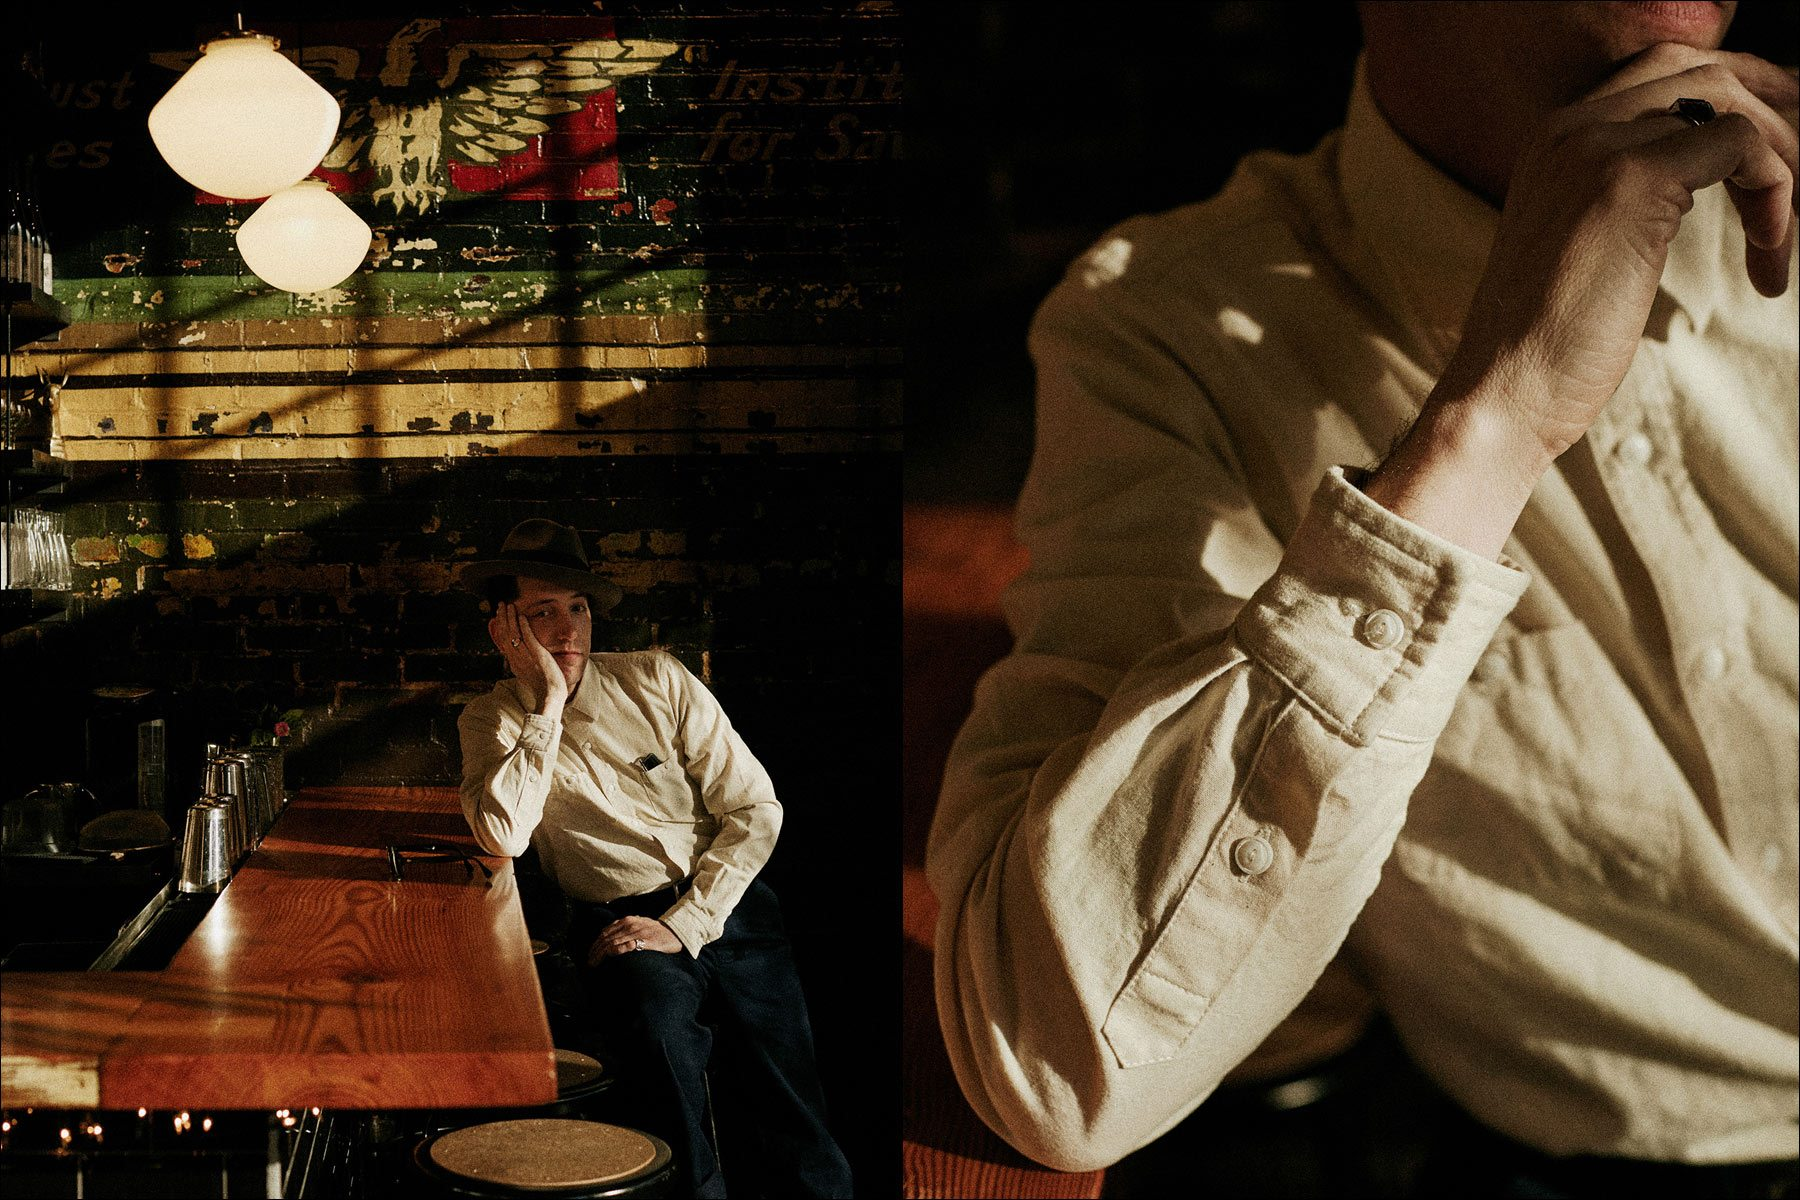 Pokey LaFarge for Knickerboker Mfg. Co. Photographed by Noah Sahady. Ponyboy magazine NY.